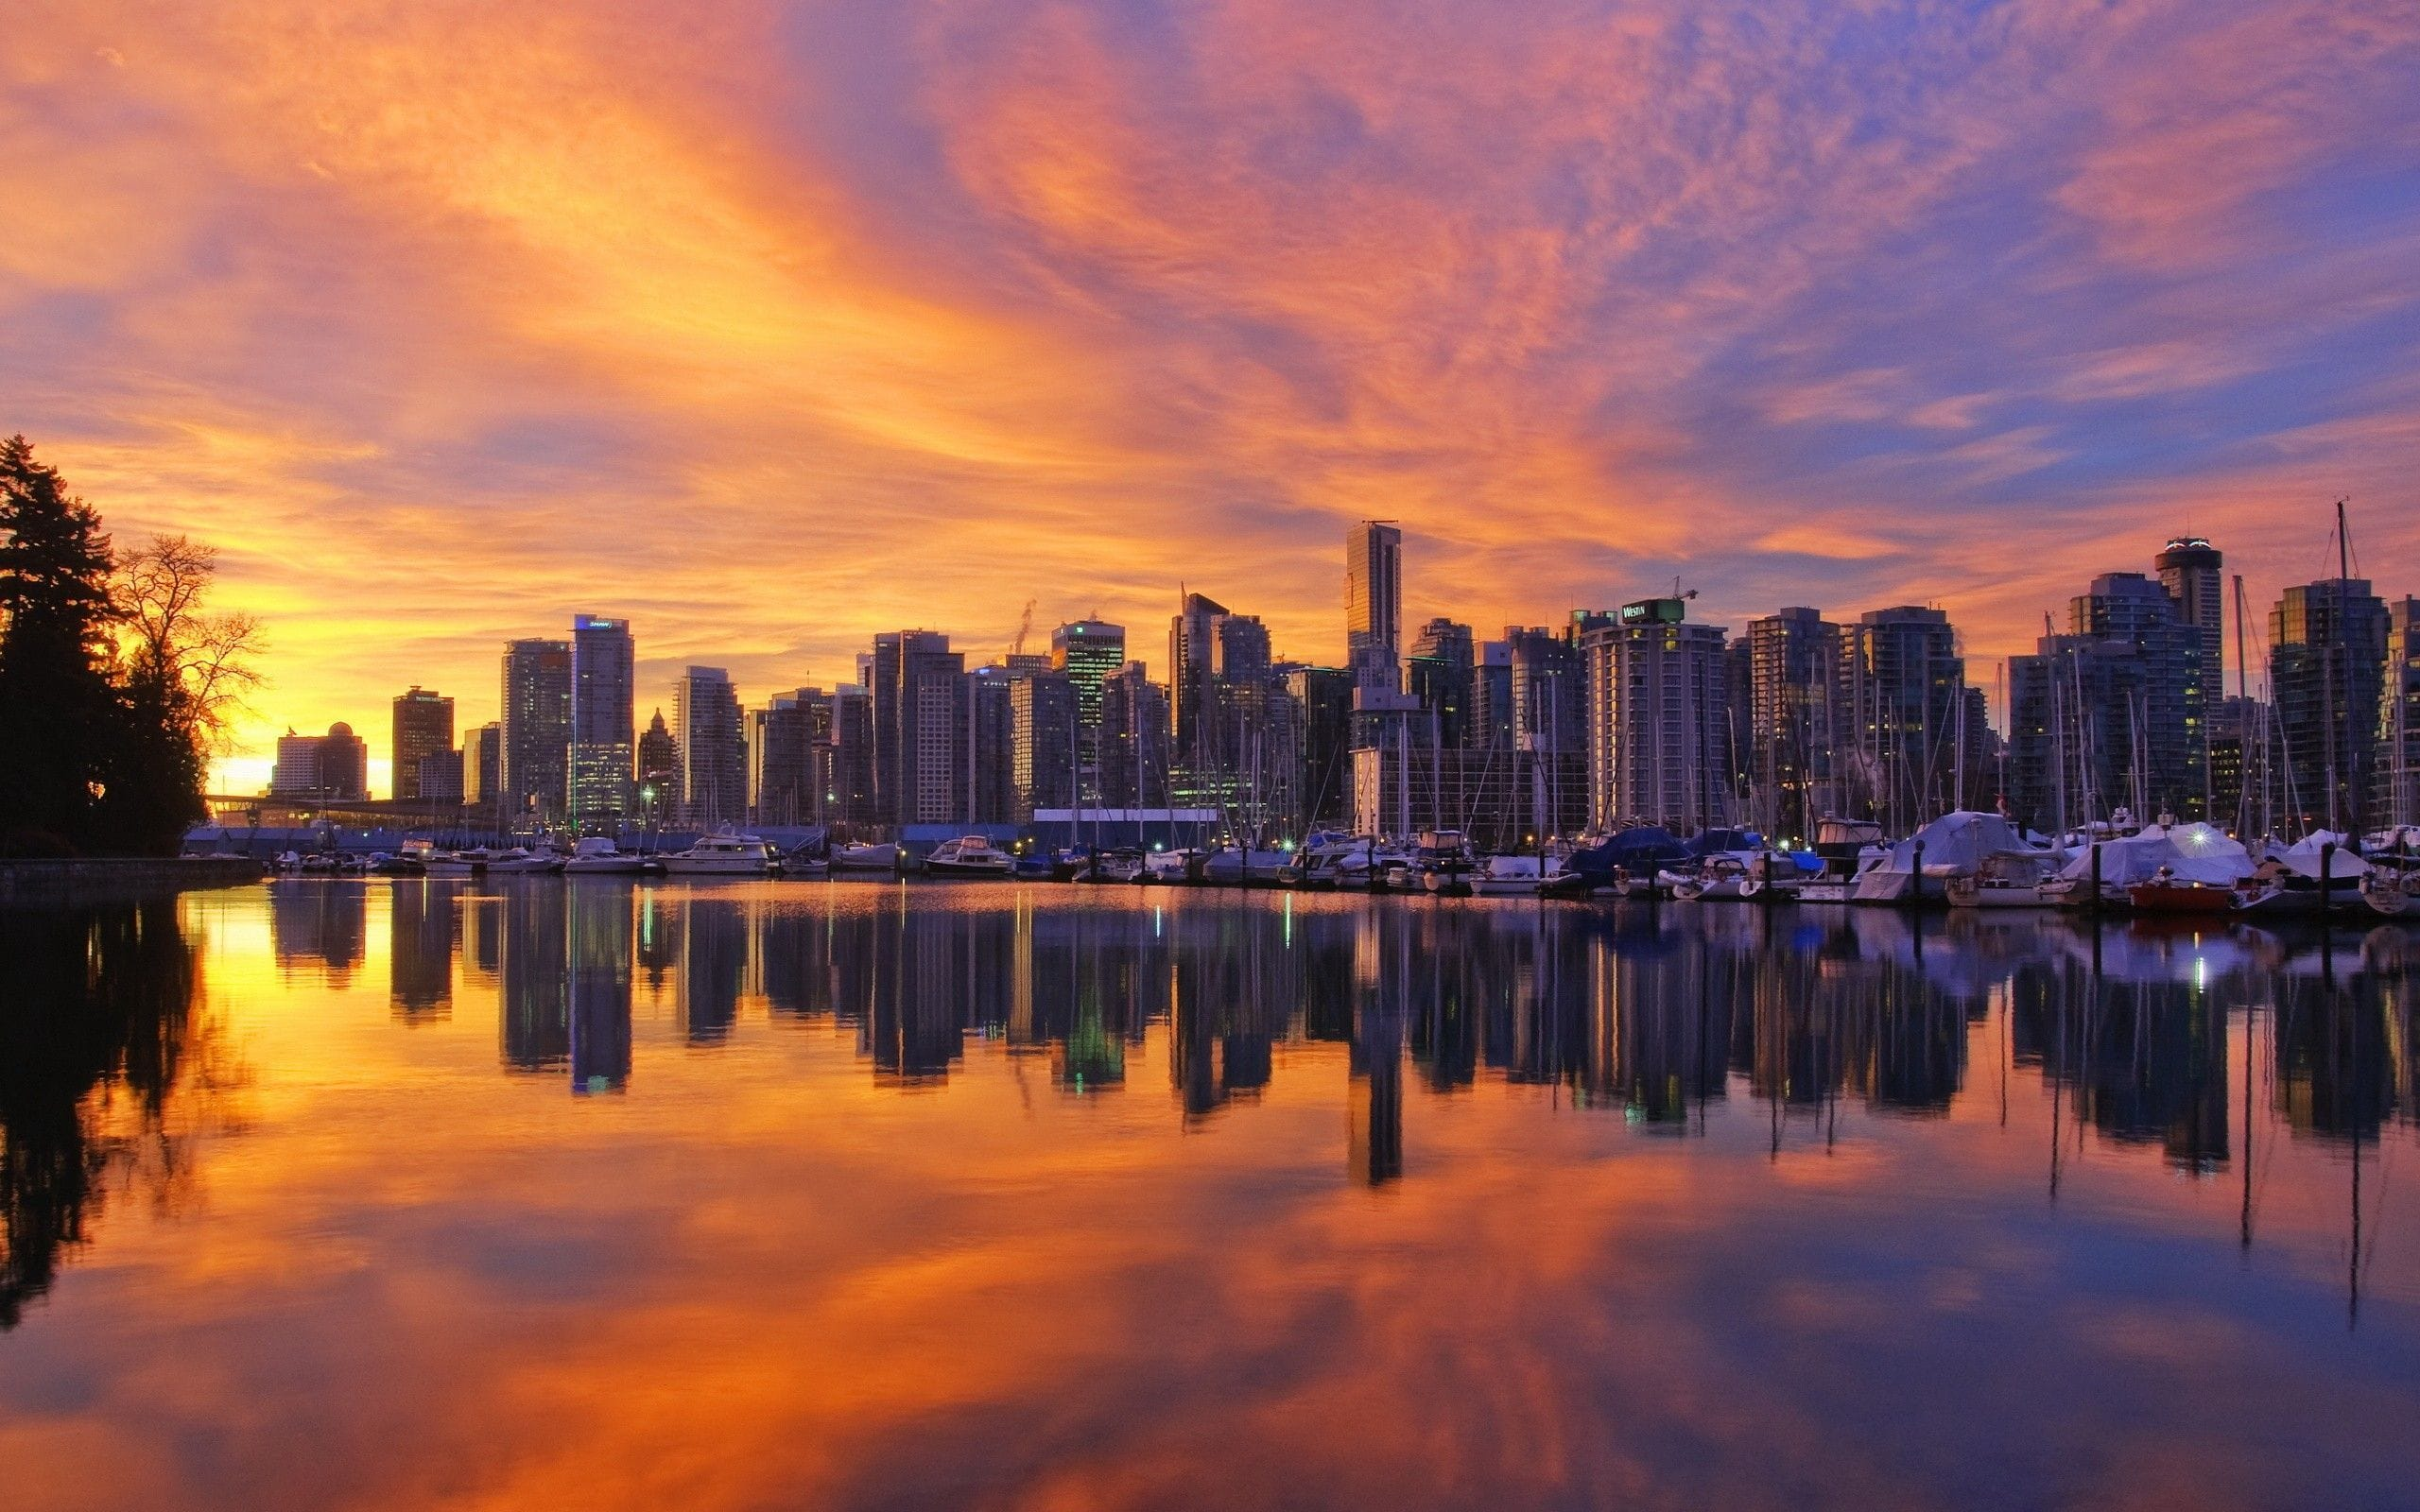 Vancouver Hd Wallpapers 7wallpapers Net